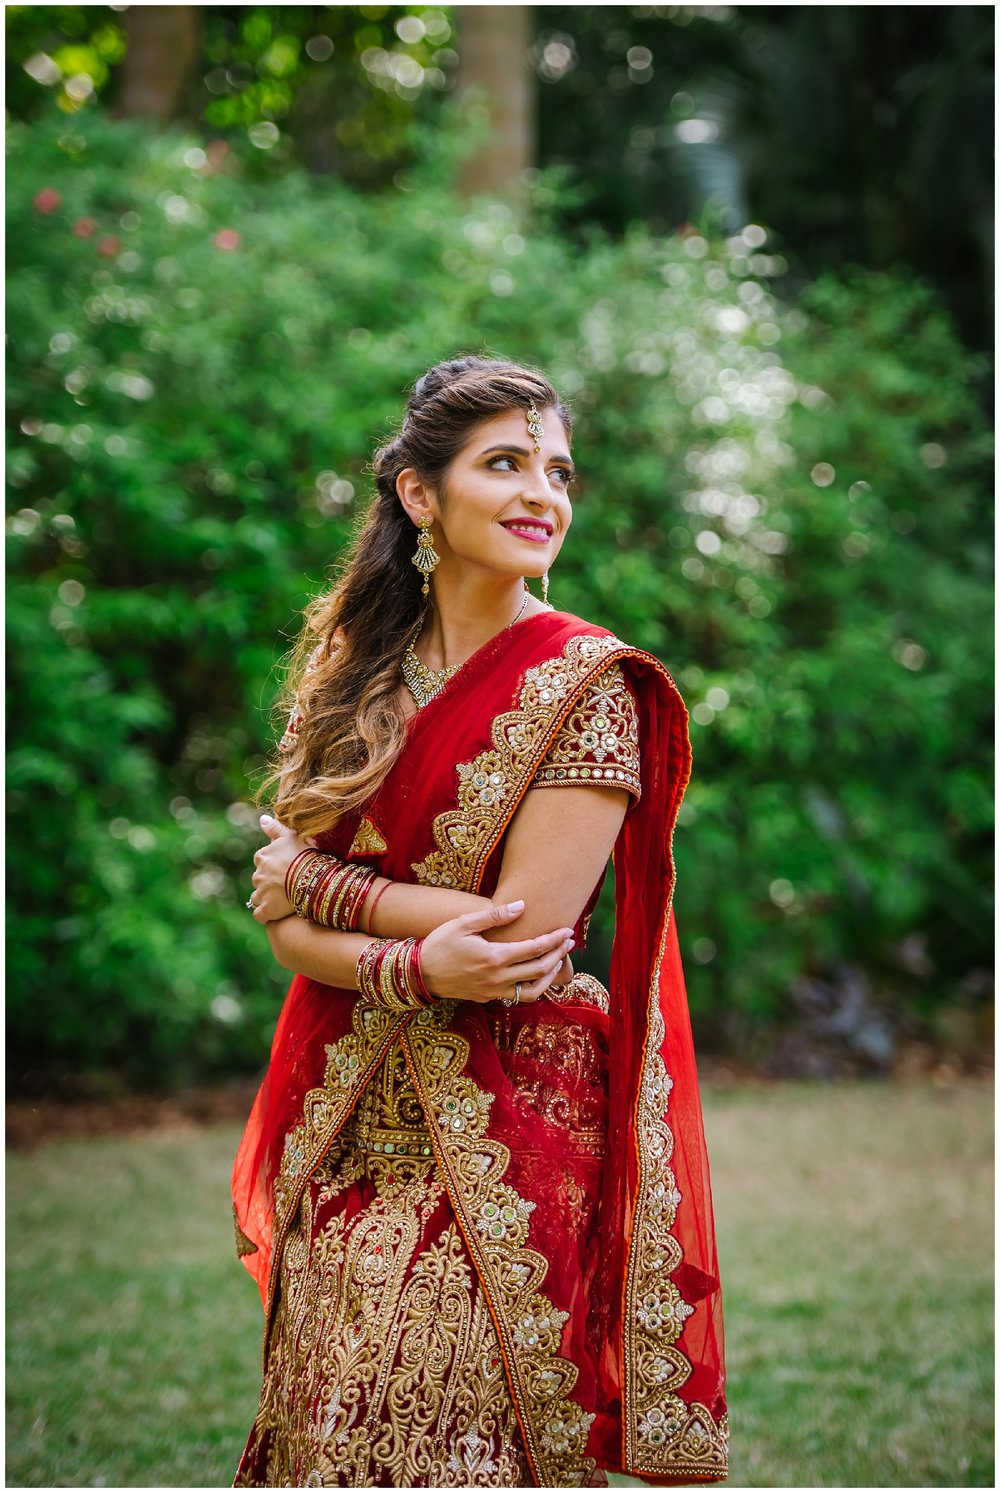 St-pete-indian-wedding-photographer-barat-sunken-gardens_0081.jpg